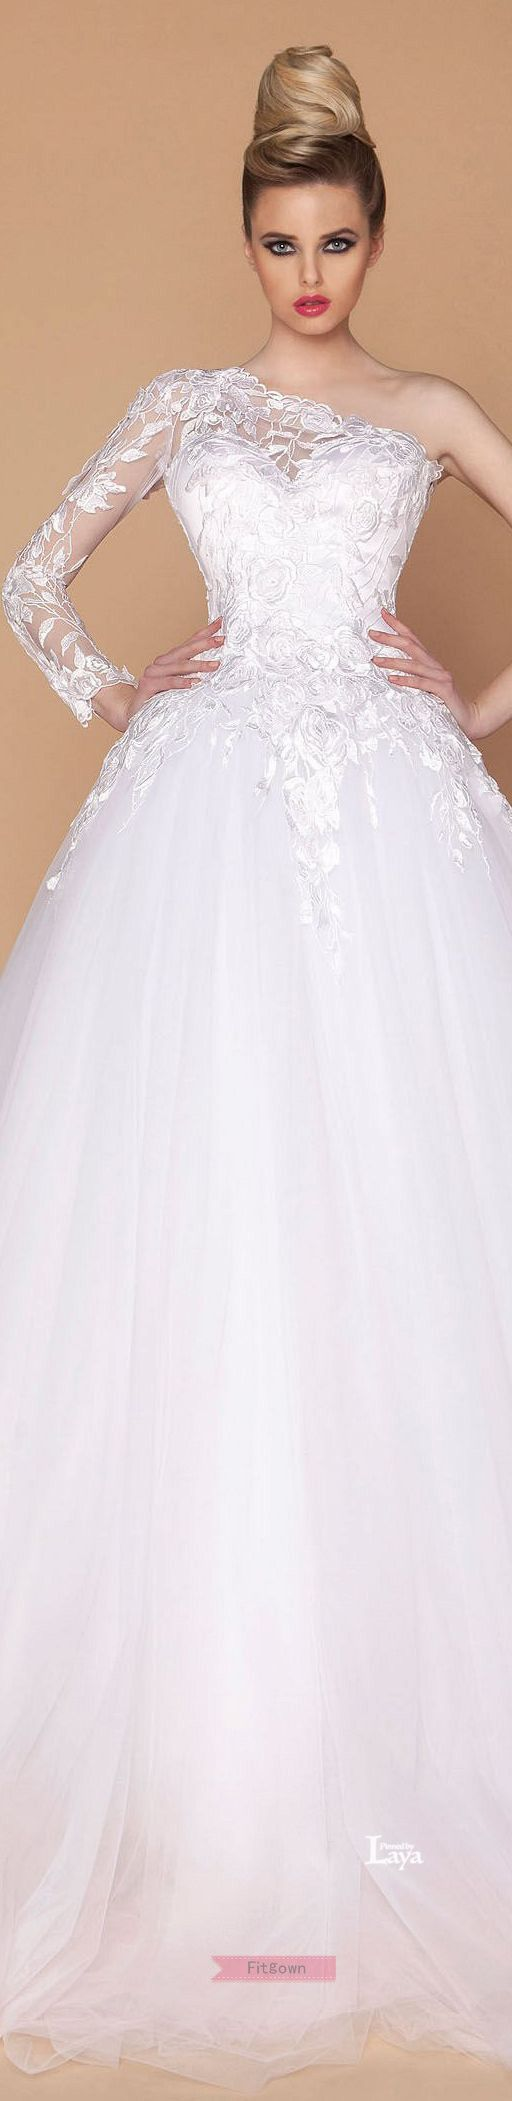 best wedding galore images on pinterest wedding frocks